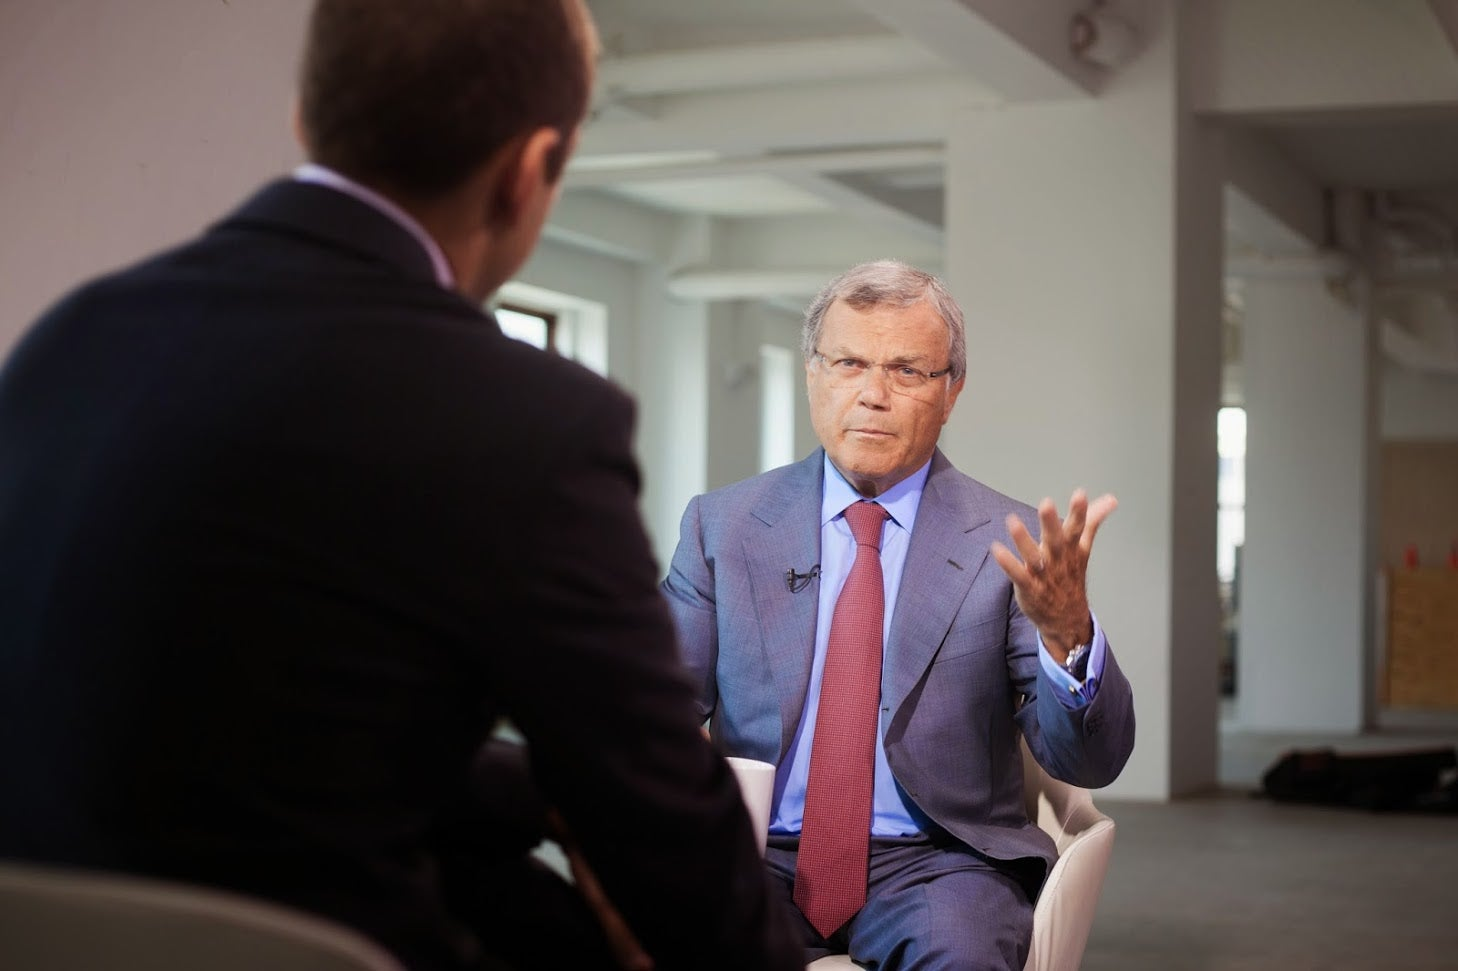 Sir Martin Sorrell on the State of M&A and the Failed Publicis Omnicom Merger